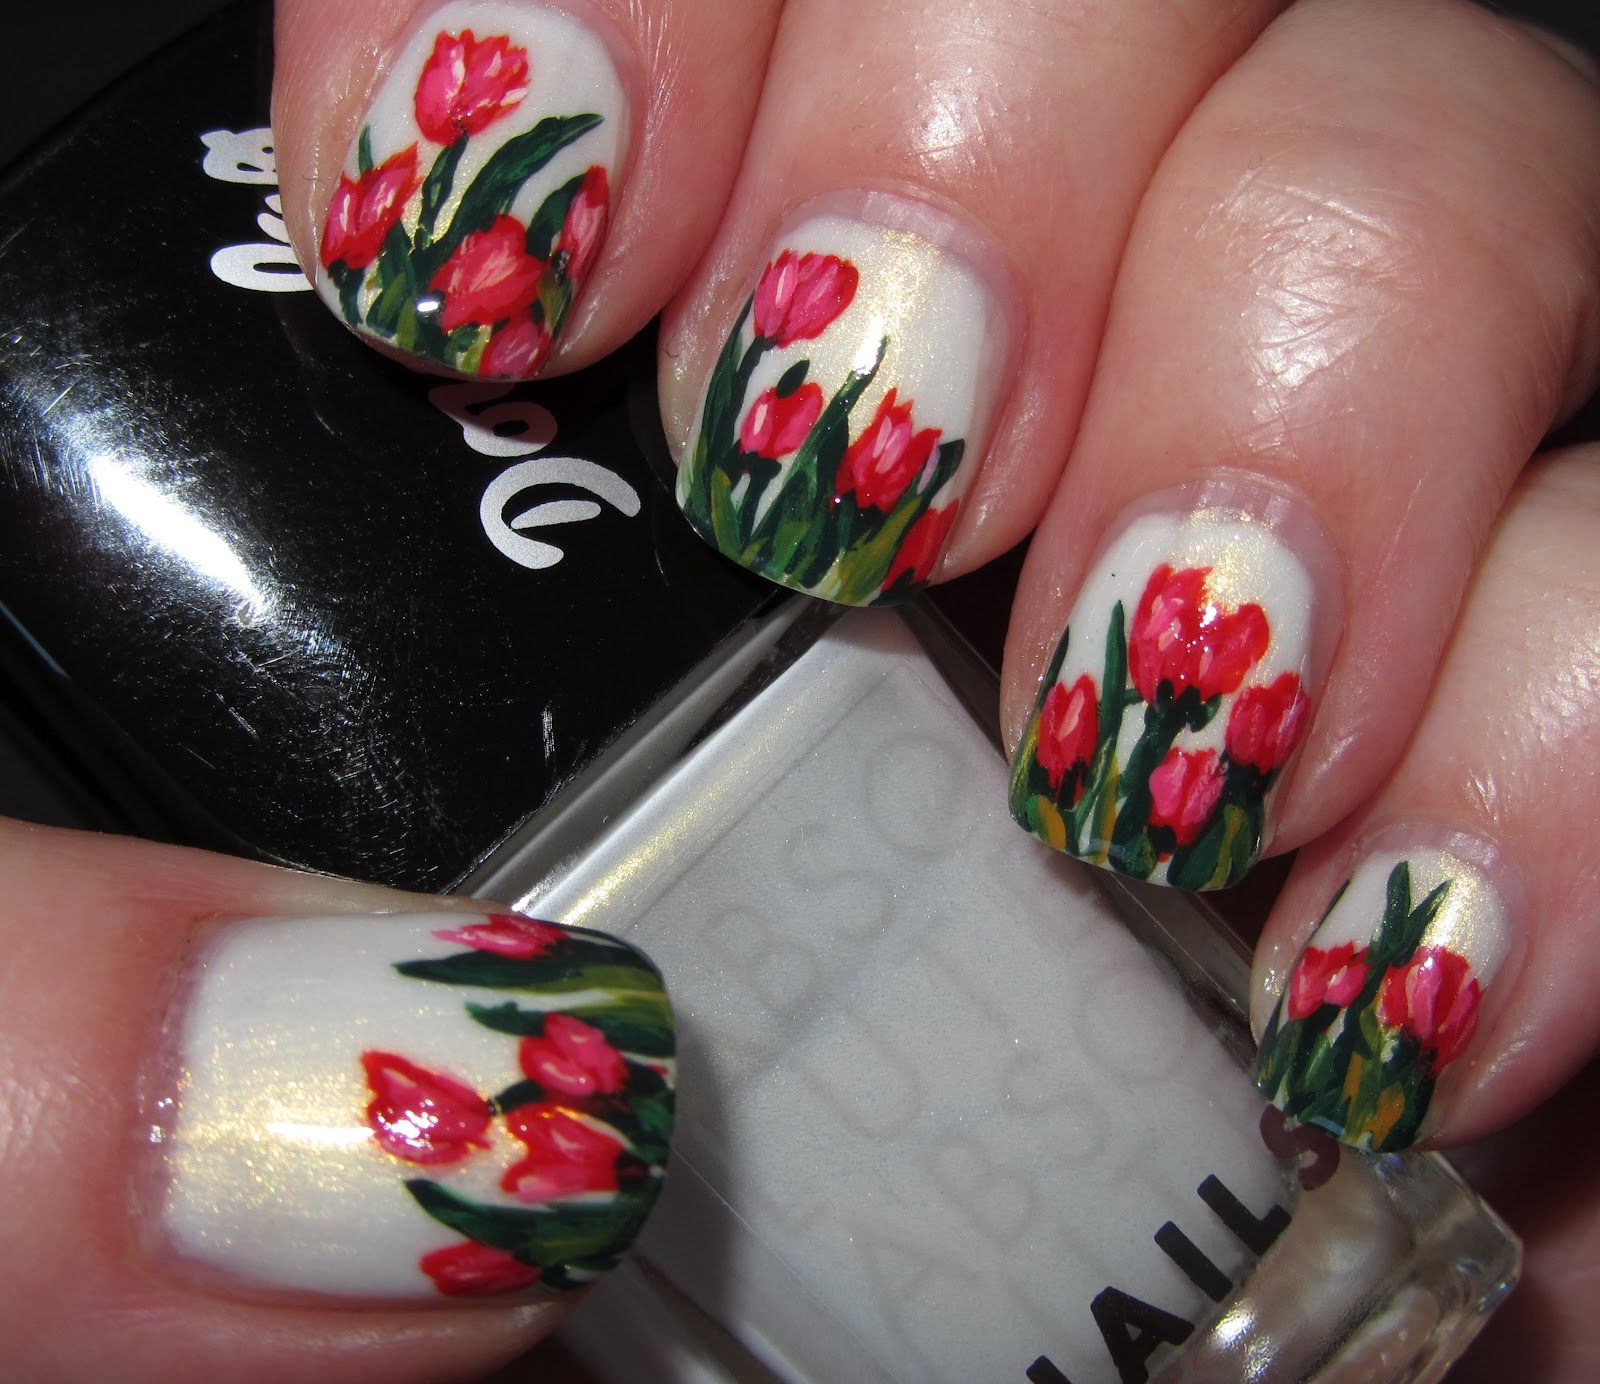 Marias Nail Art And Polish Blog: Tulips For Sara